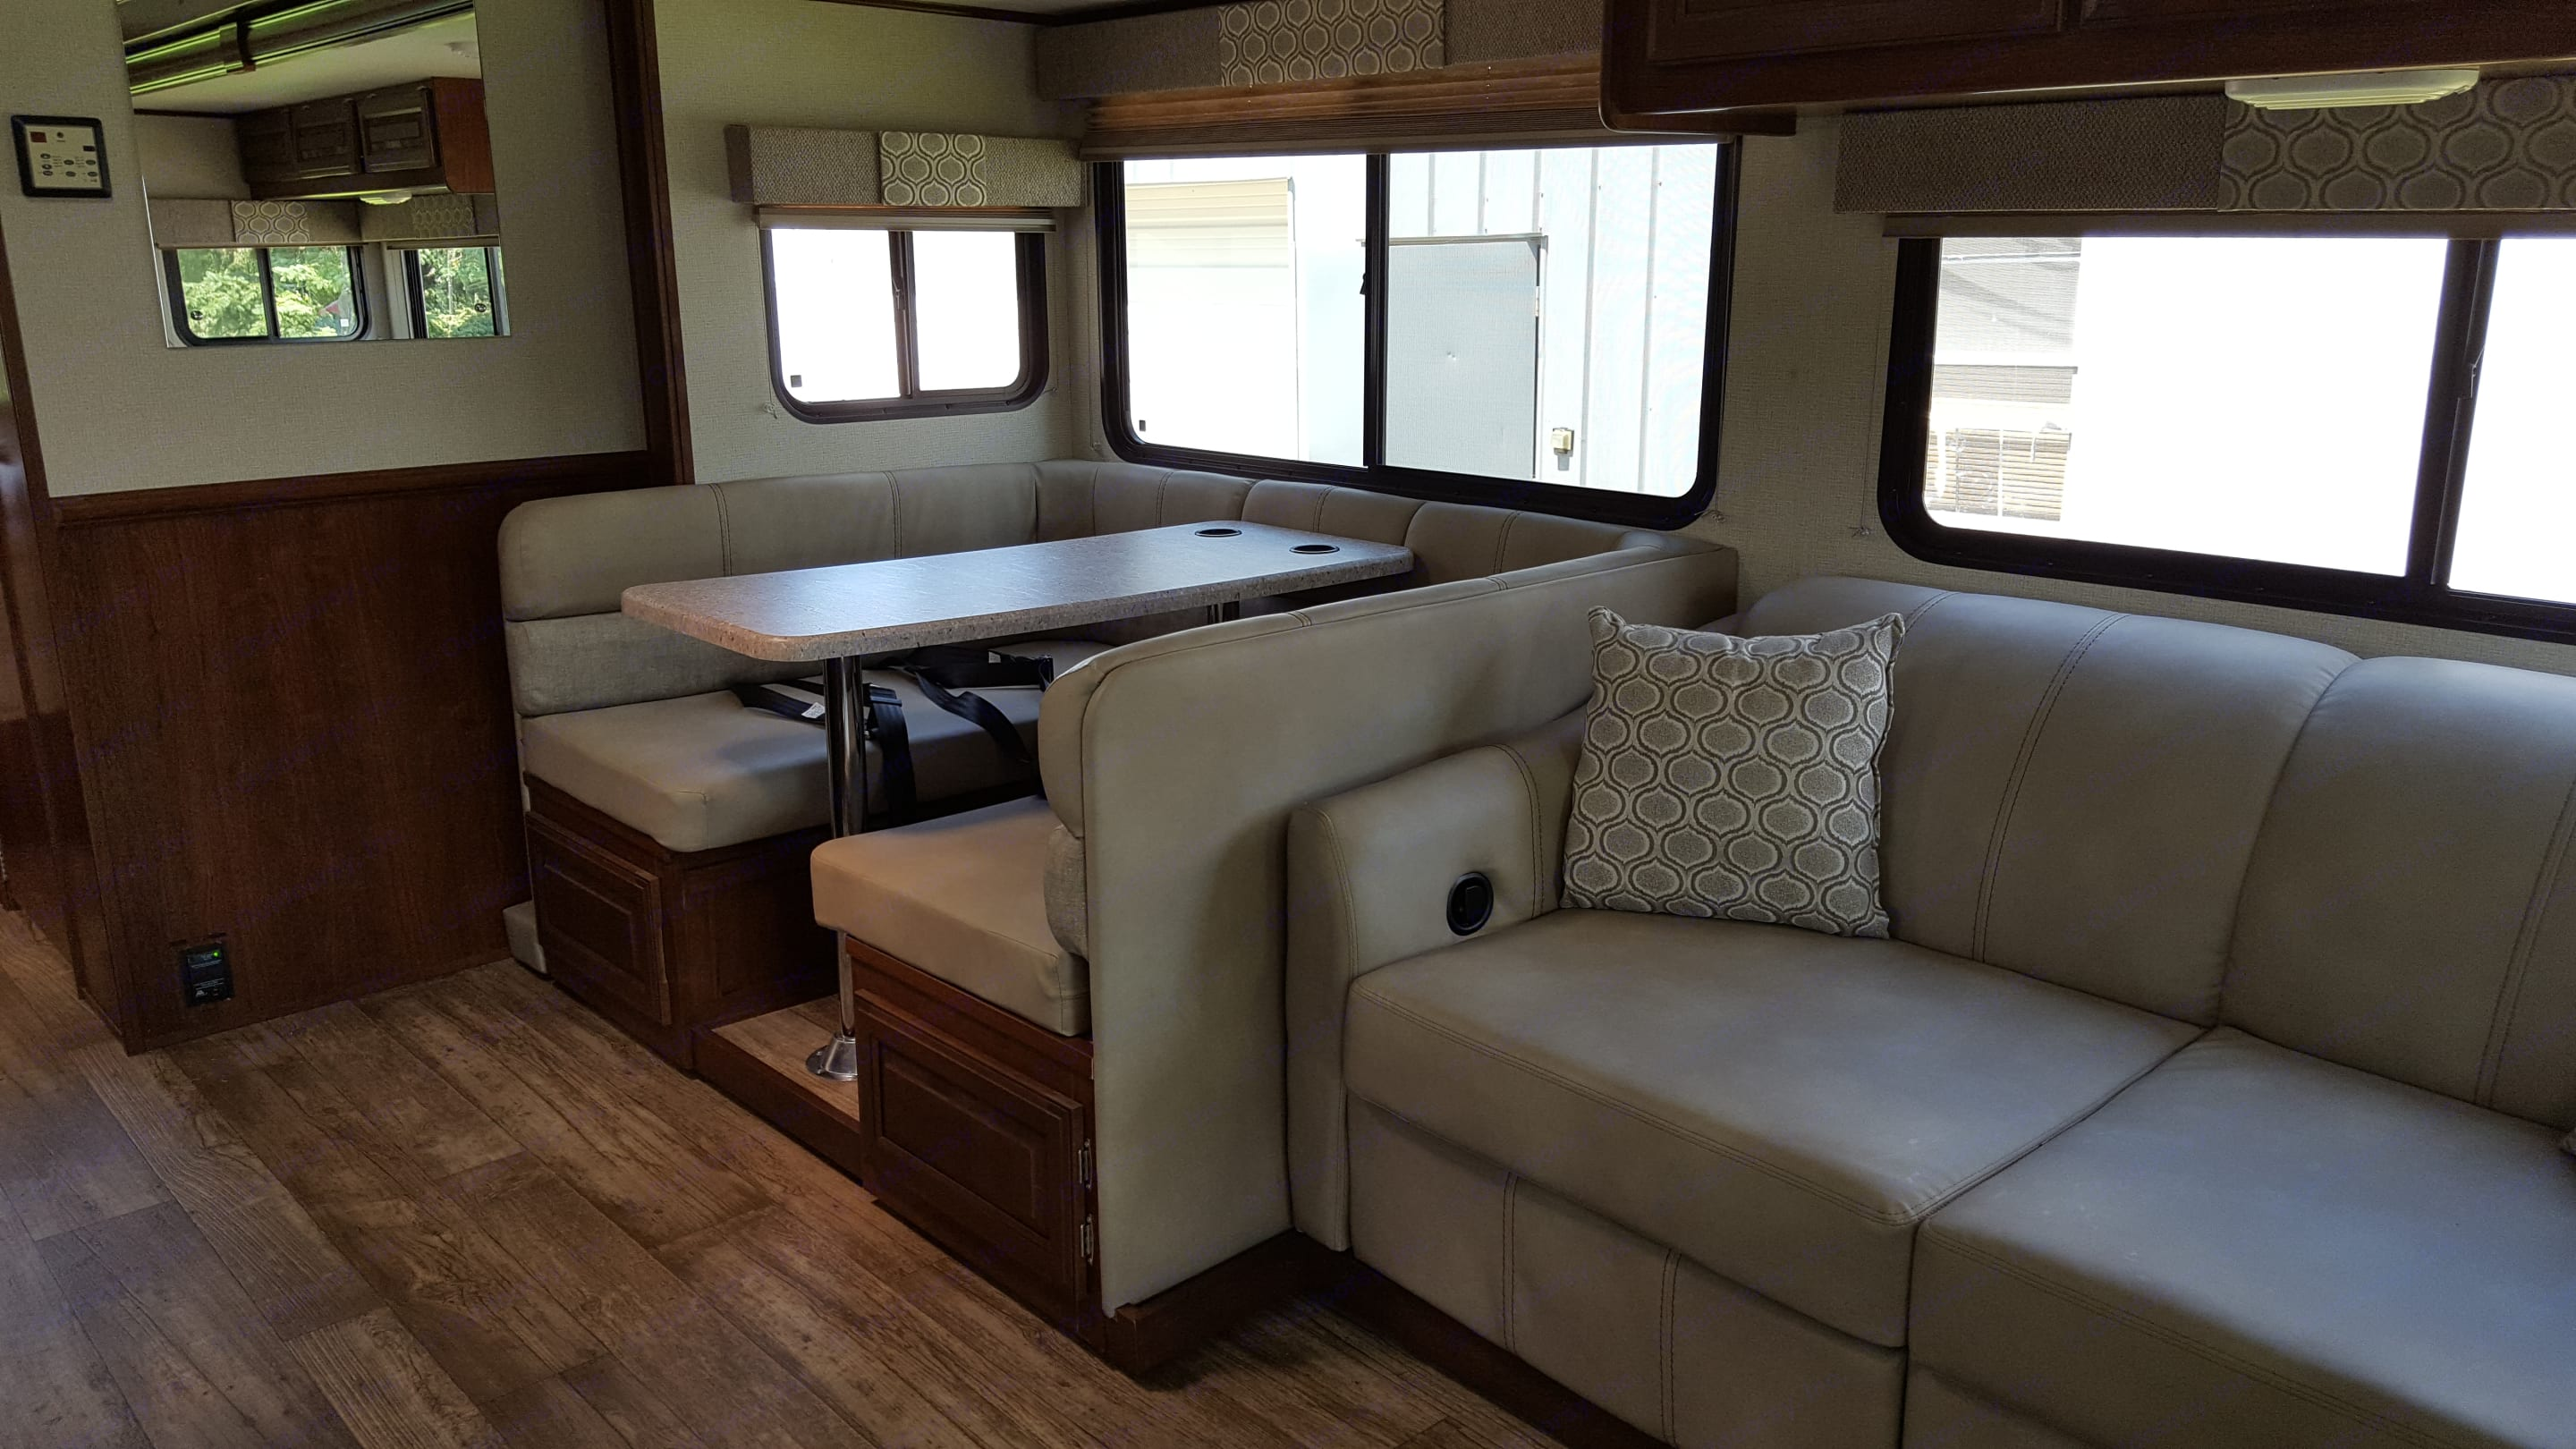 Dinette seats 4 people and has 4 seatbelts. Also folds down for sleeping. Pull out hide-a-bed sofa sleeper has foot recliners.. Forest River FR3 2018